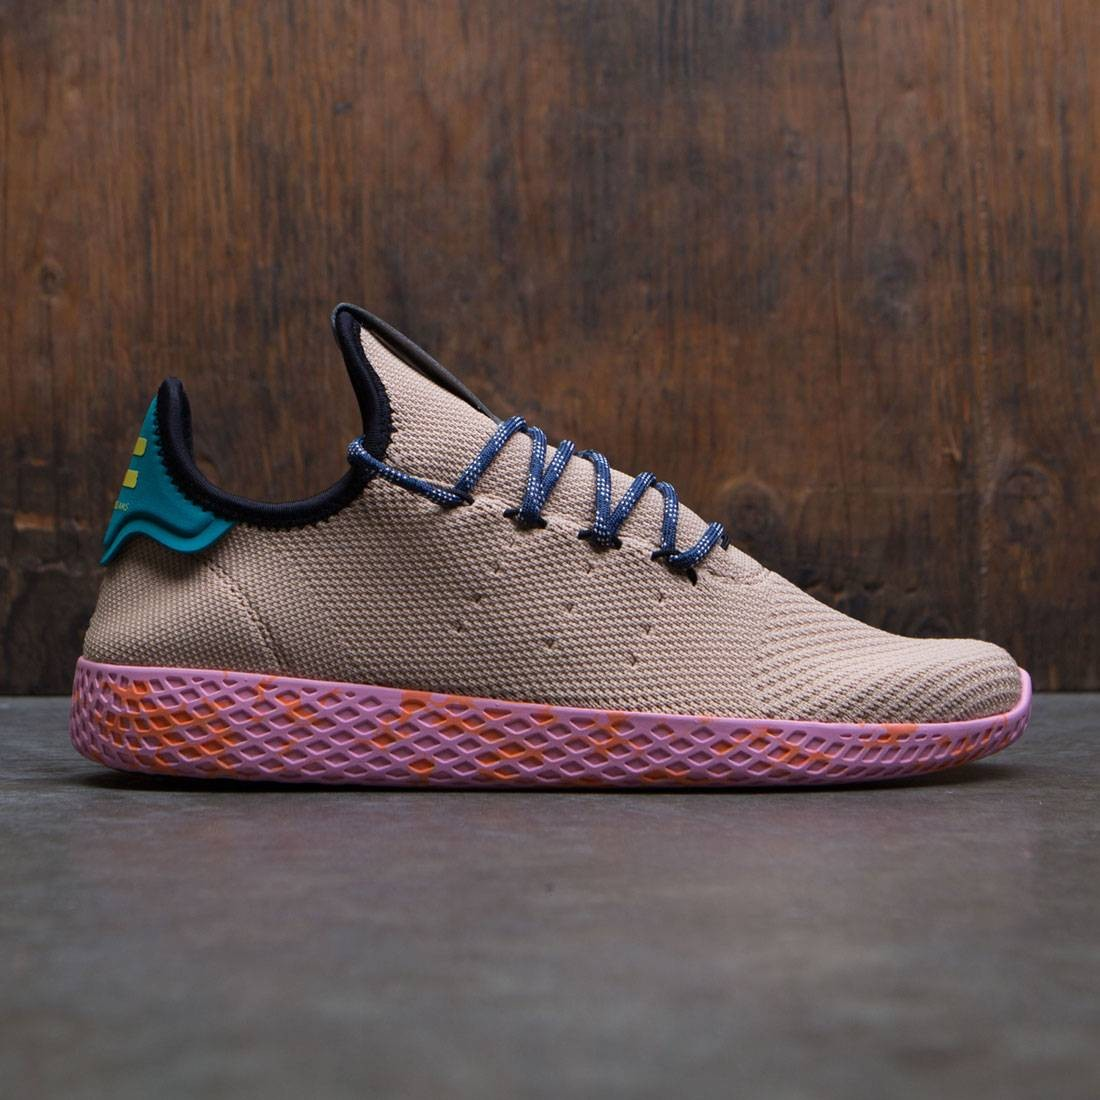 Adidas x pharrell williams marmo uomini tennis hu tan till marmo williams rosa f4a674